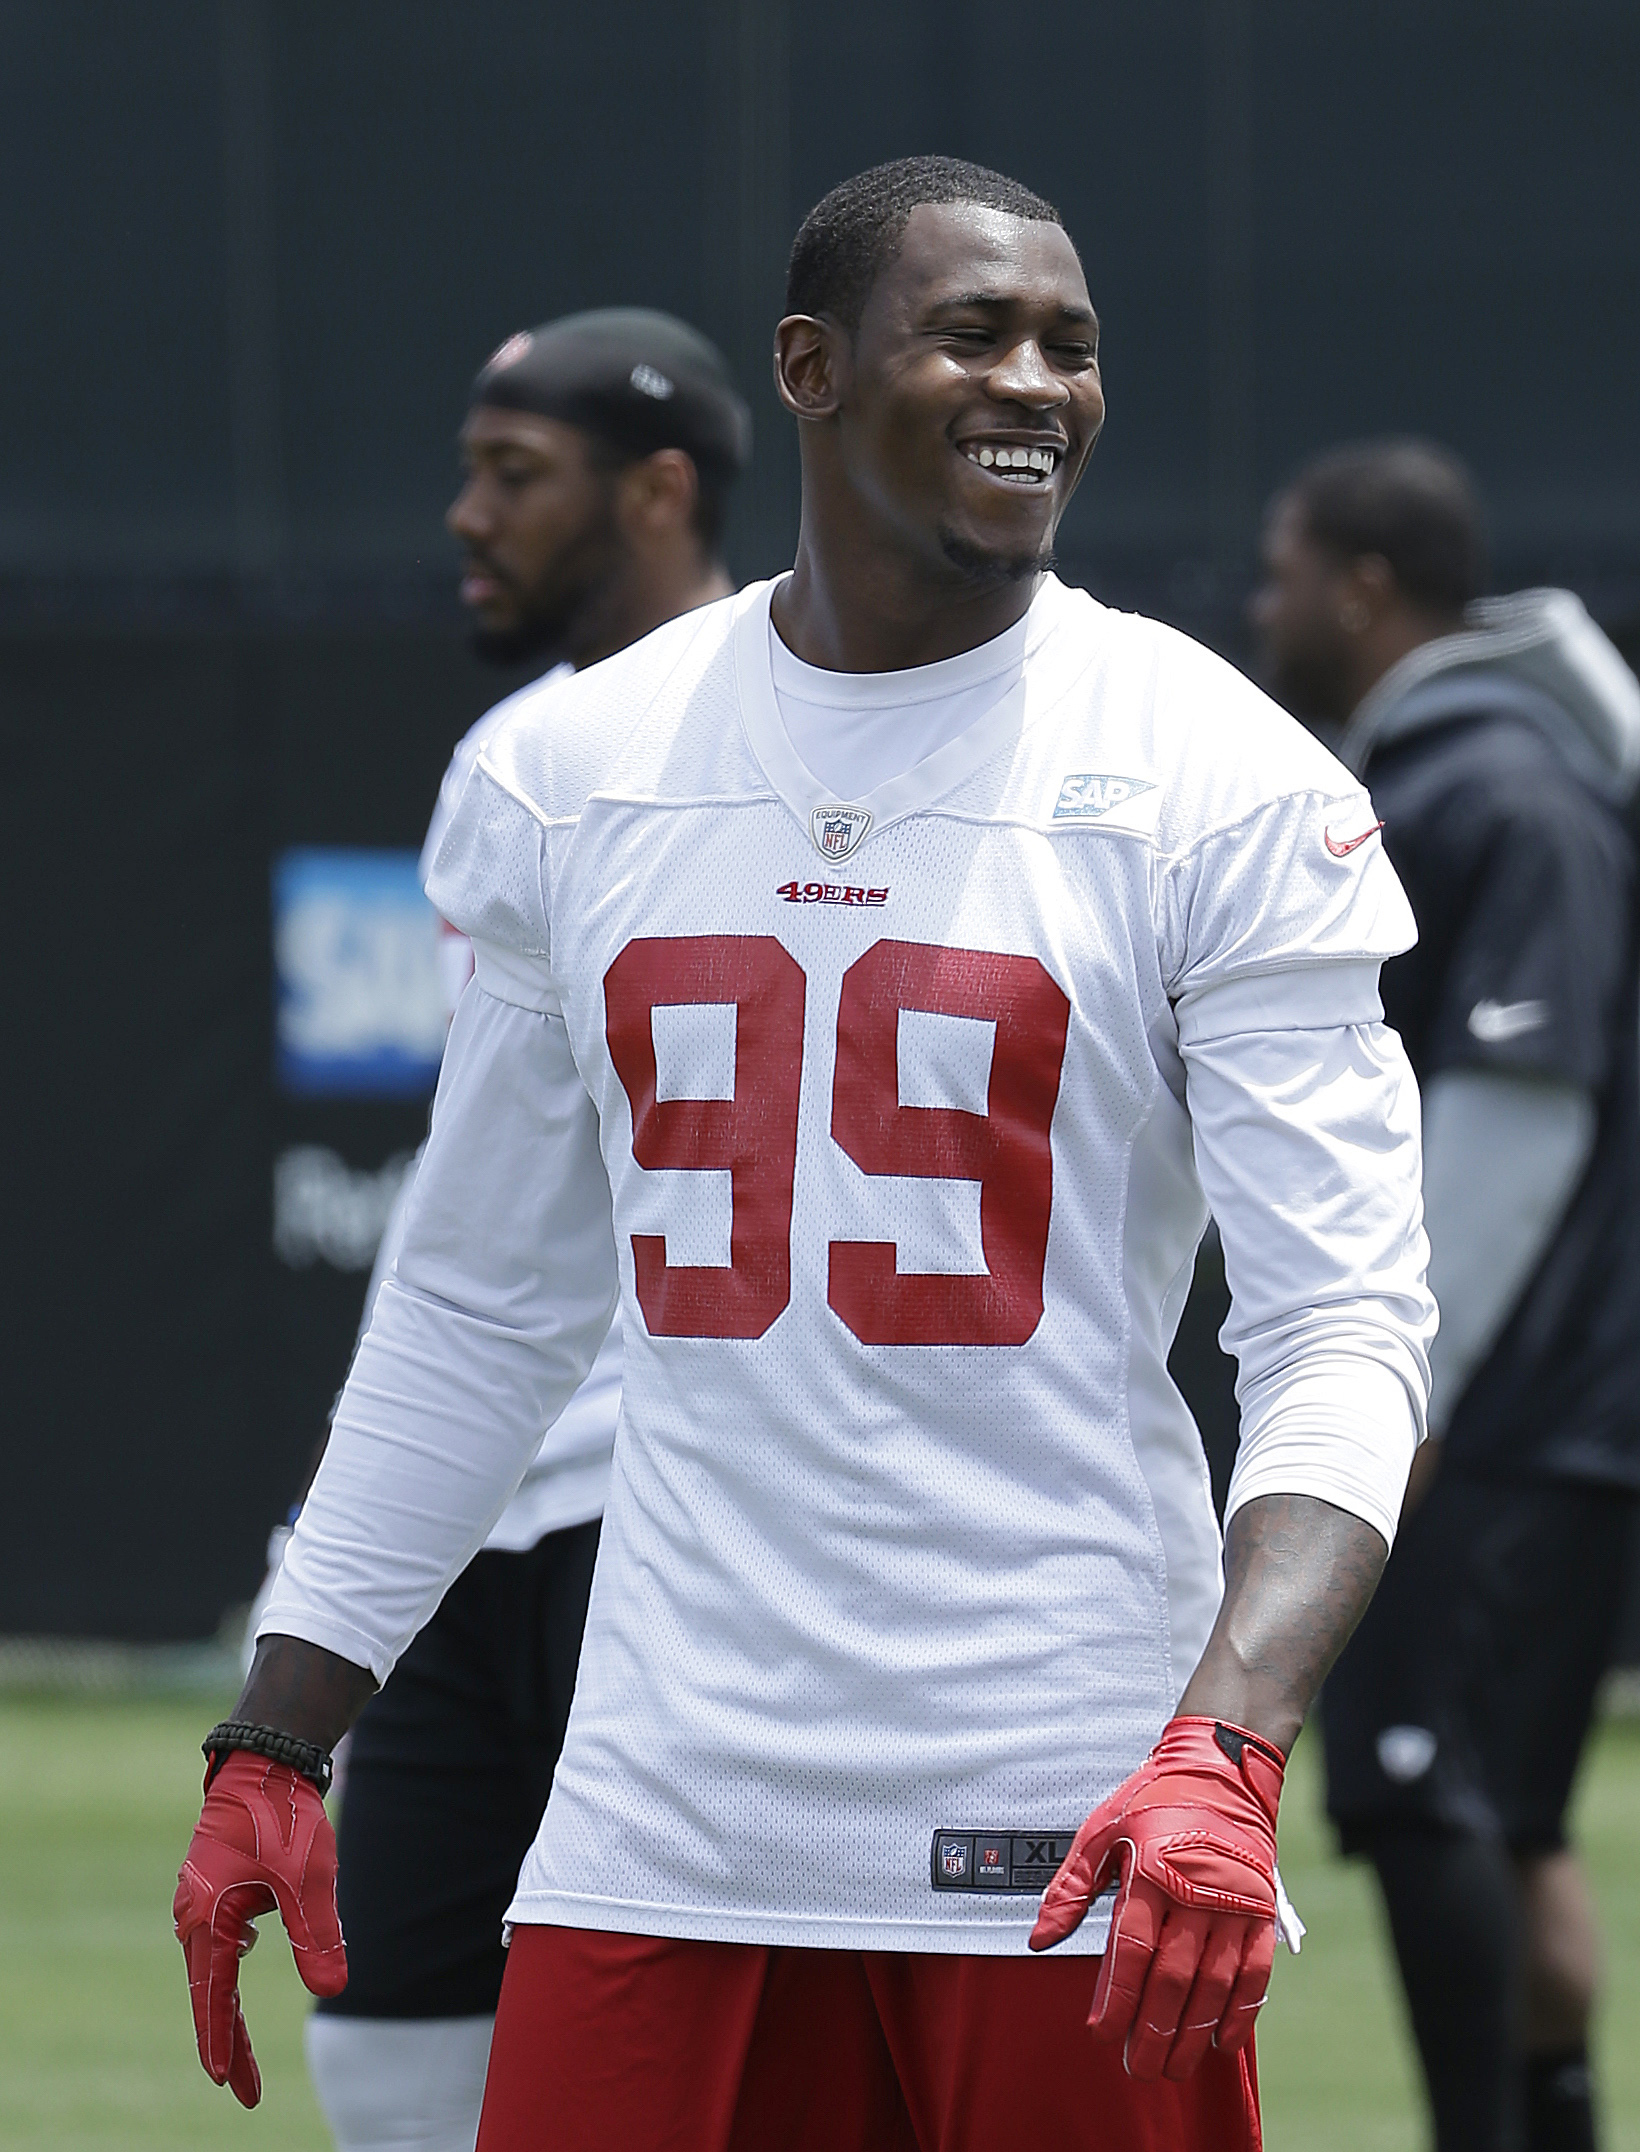 FILE  - In this May 29, 2015 file photo, San Francisco 49ers linebacker Aldon Smith (99) smiles during practice at an NFL football facility in Santa Clara, Calif. Police in Northern California have arrested and accused Smith of hit and run, drunken drivin